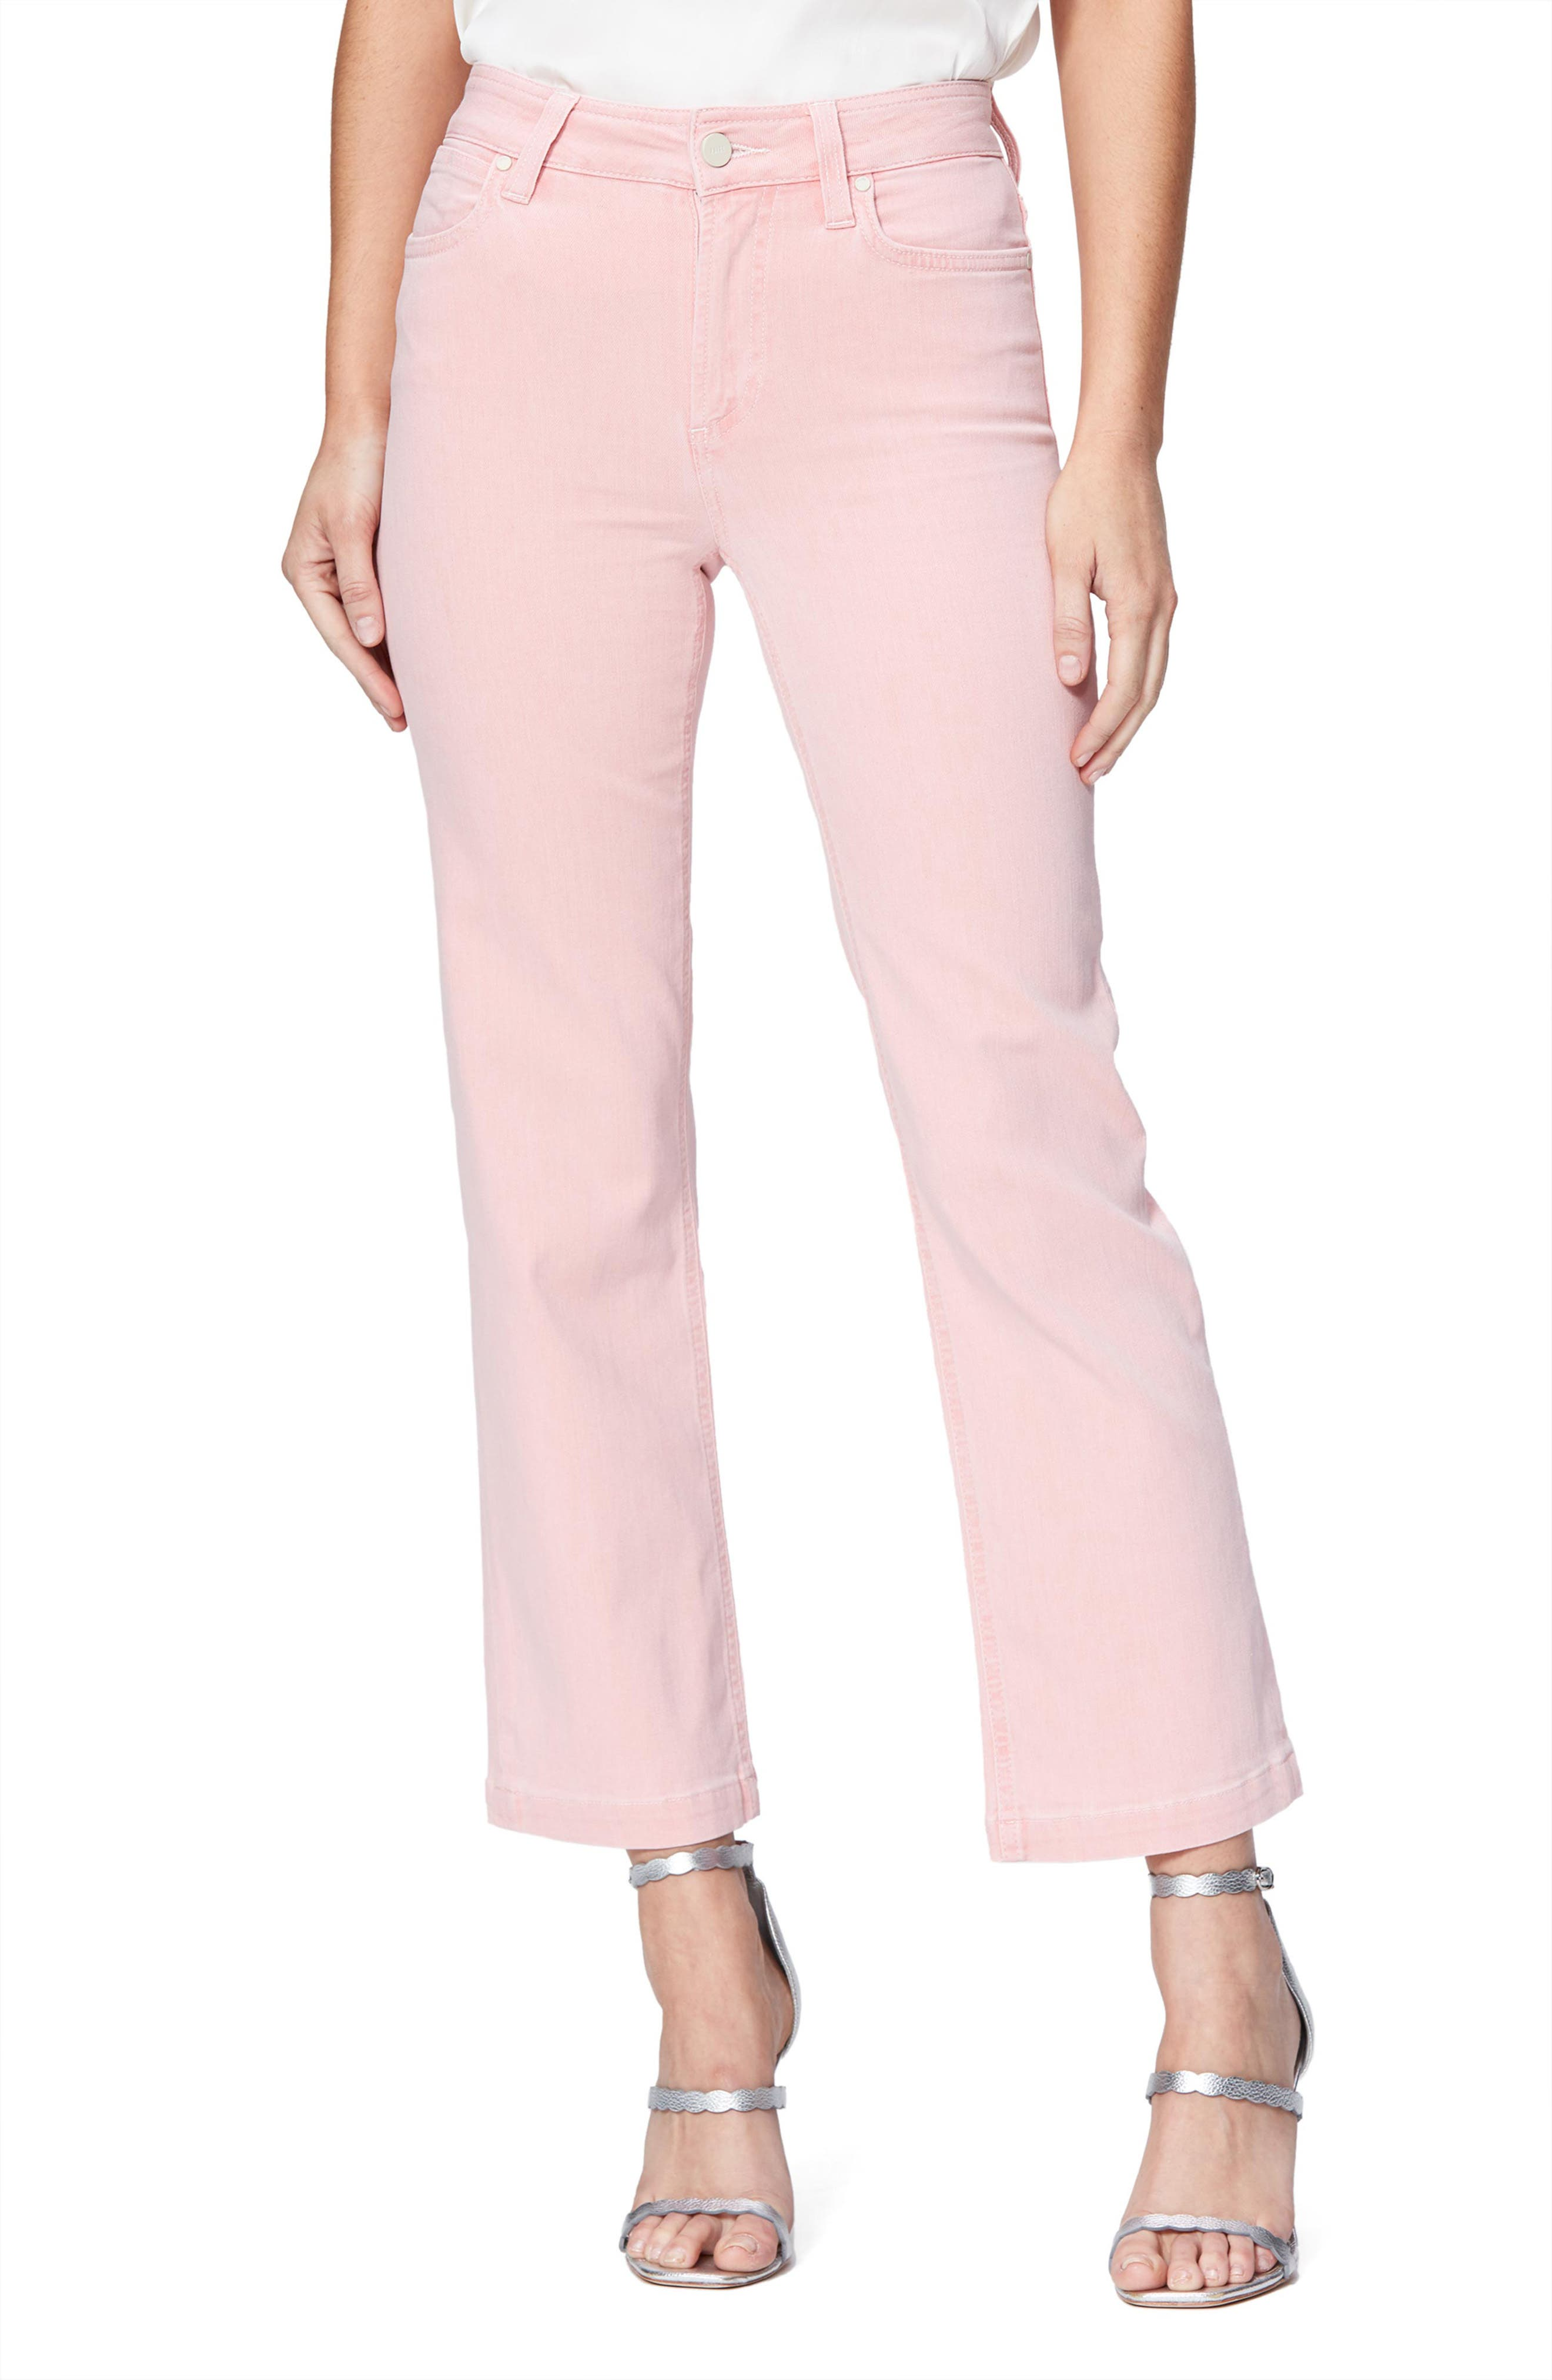 Image of PAIGE Atley High Waist Ankle Flare Jeans